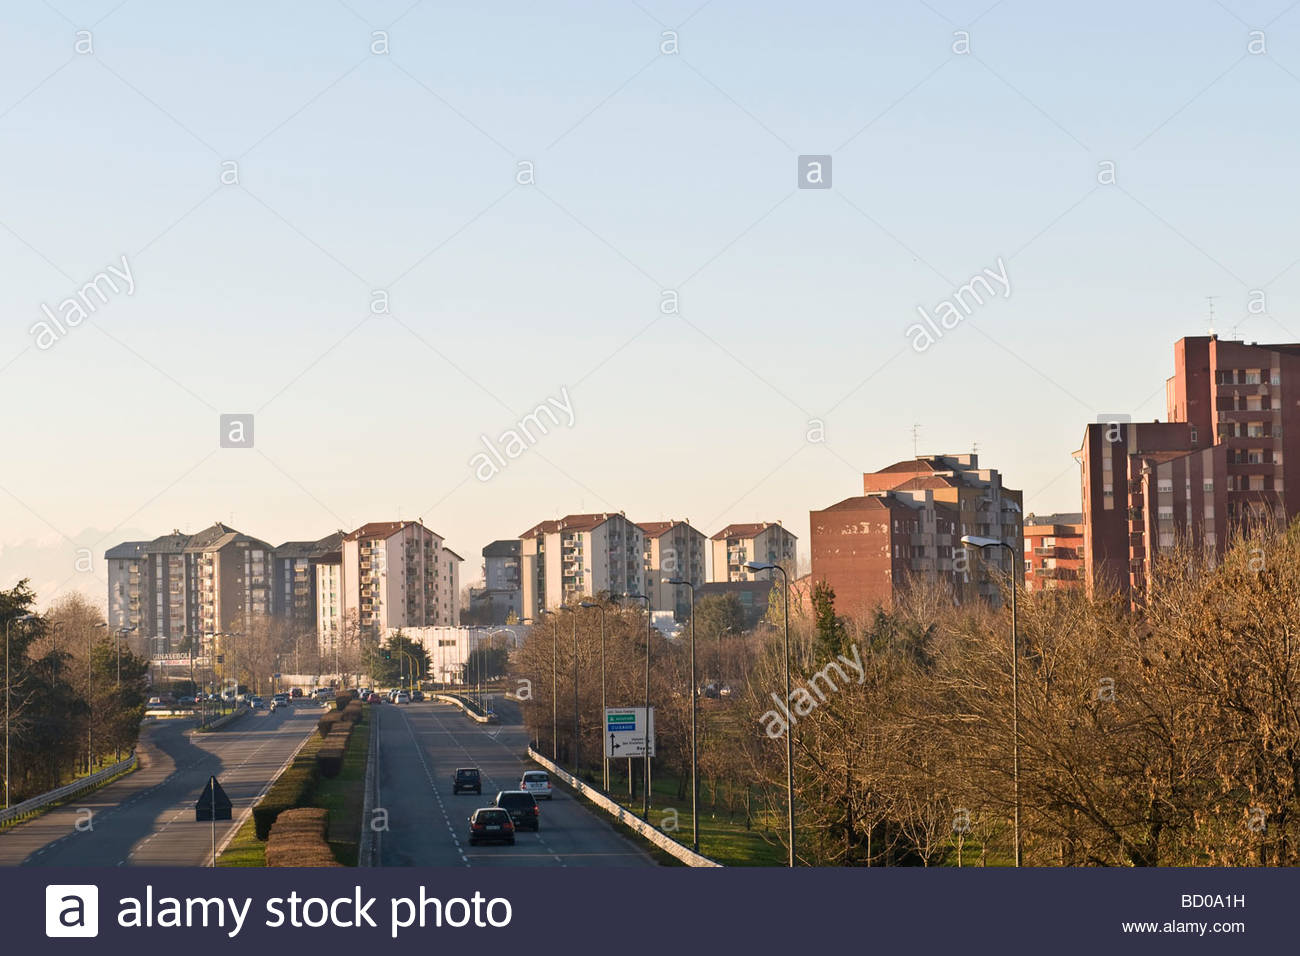 hinterland of milan, bisceglie, lombardy, italy - Stock Image